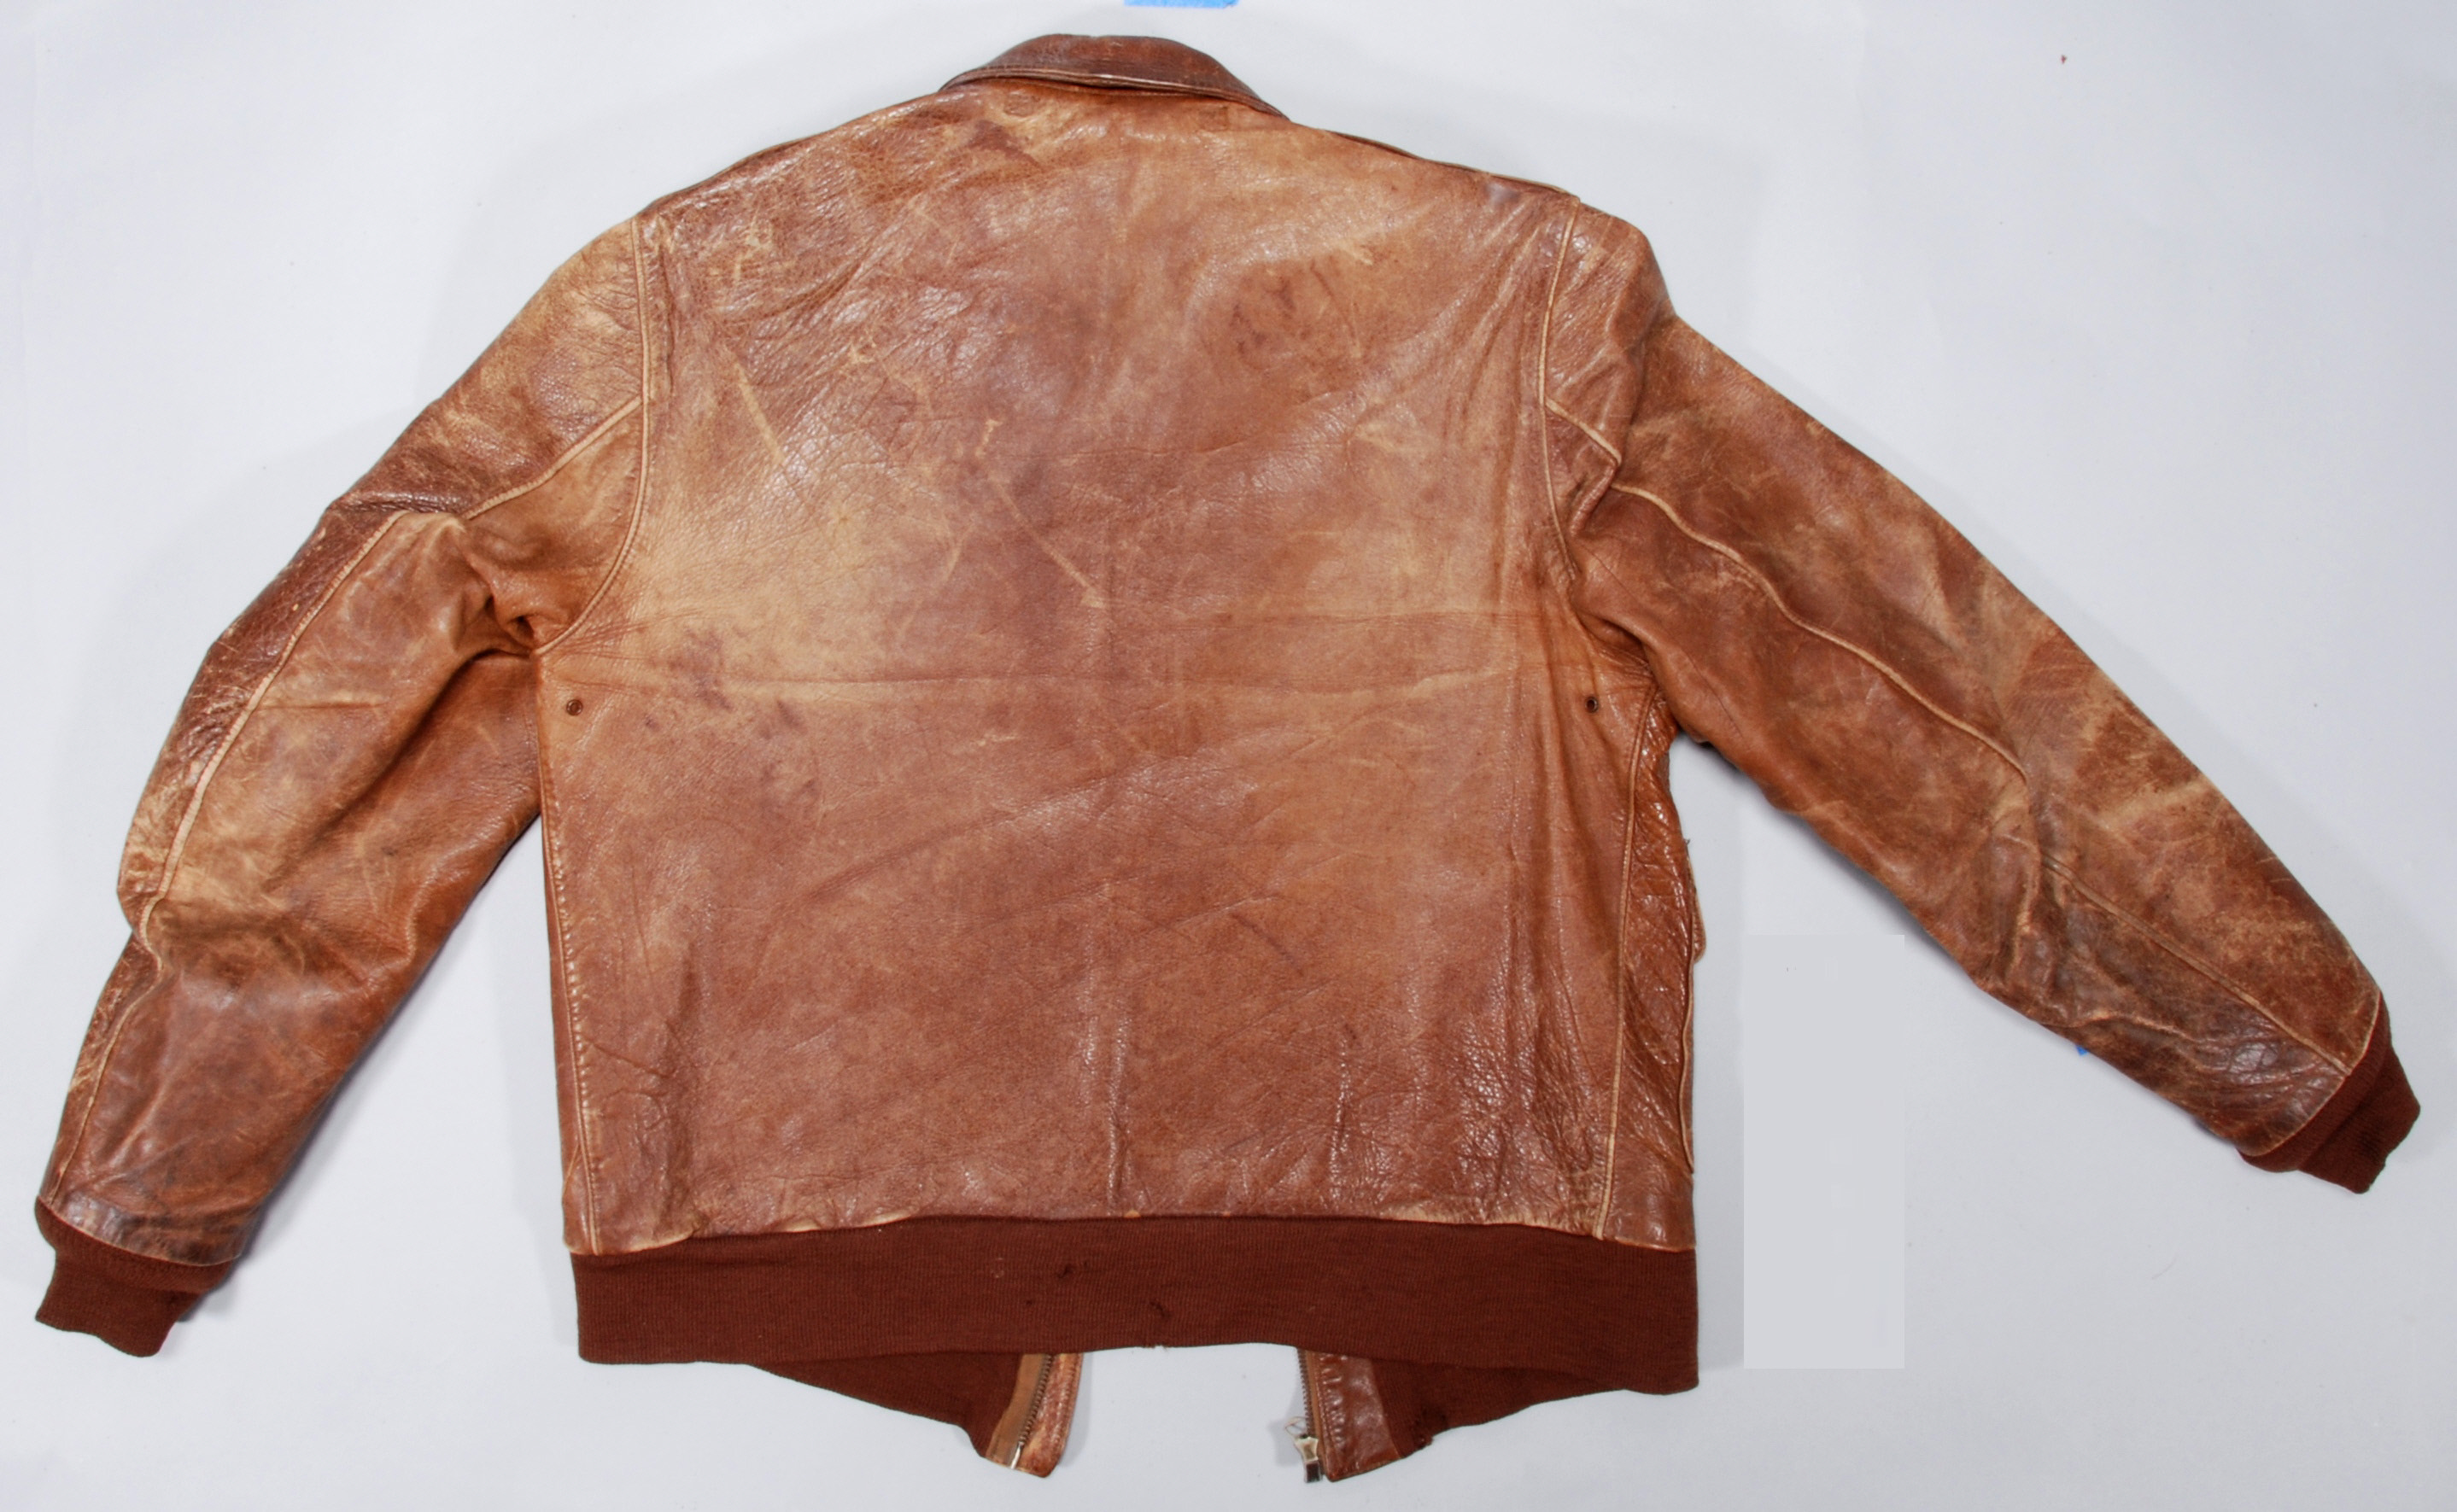 Image of : Jacket, Flying, Type A-2, United States Army Air Forces, Gen. Charles E. Yeager